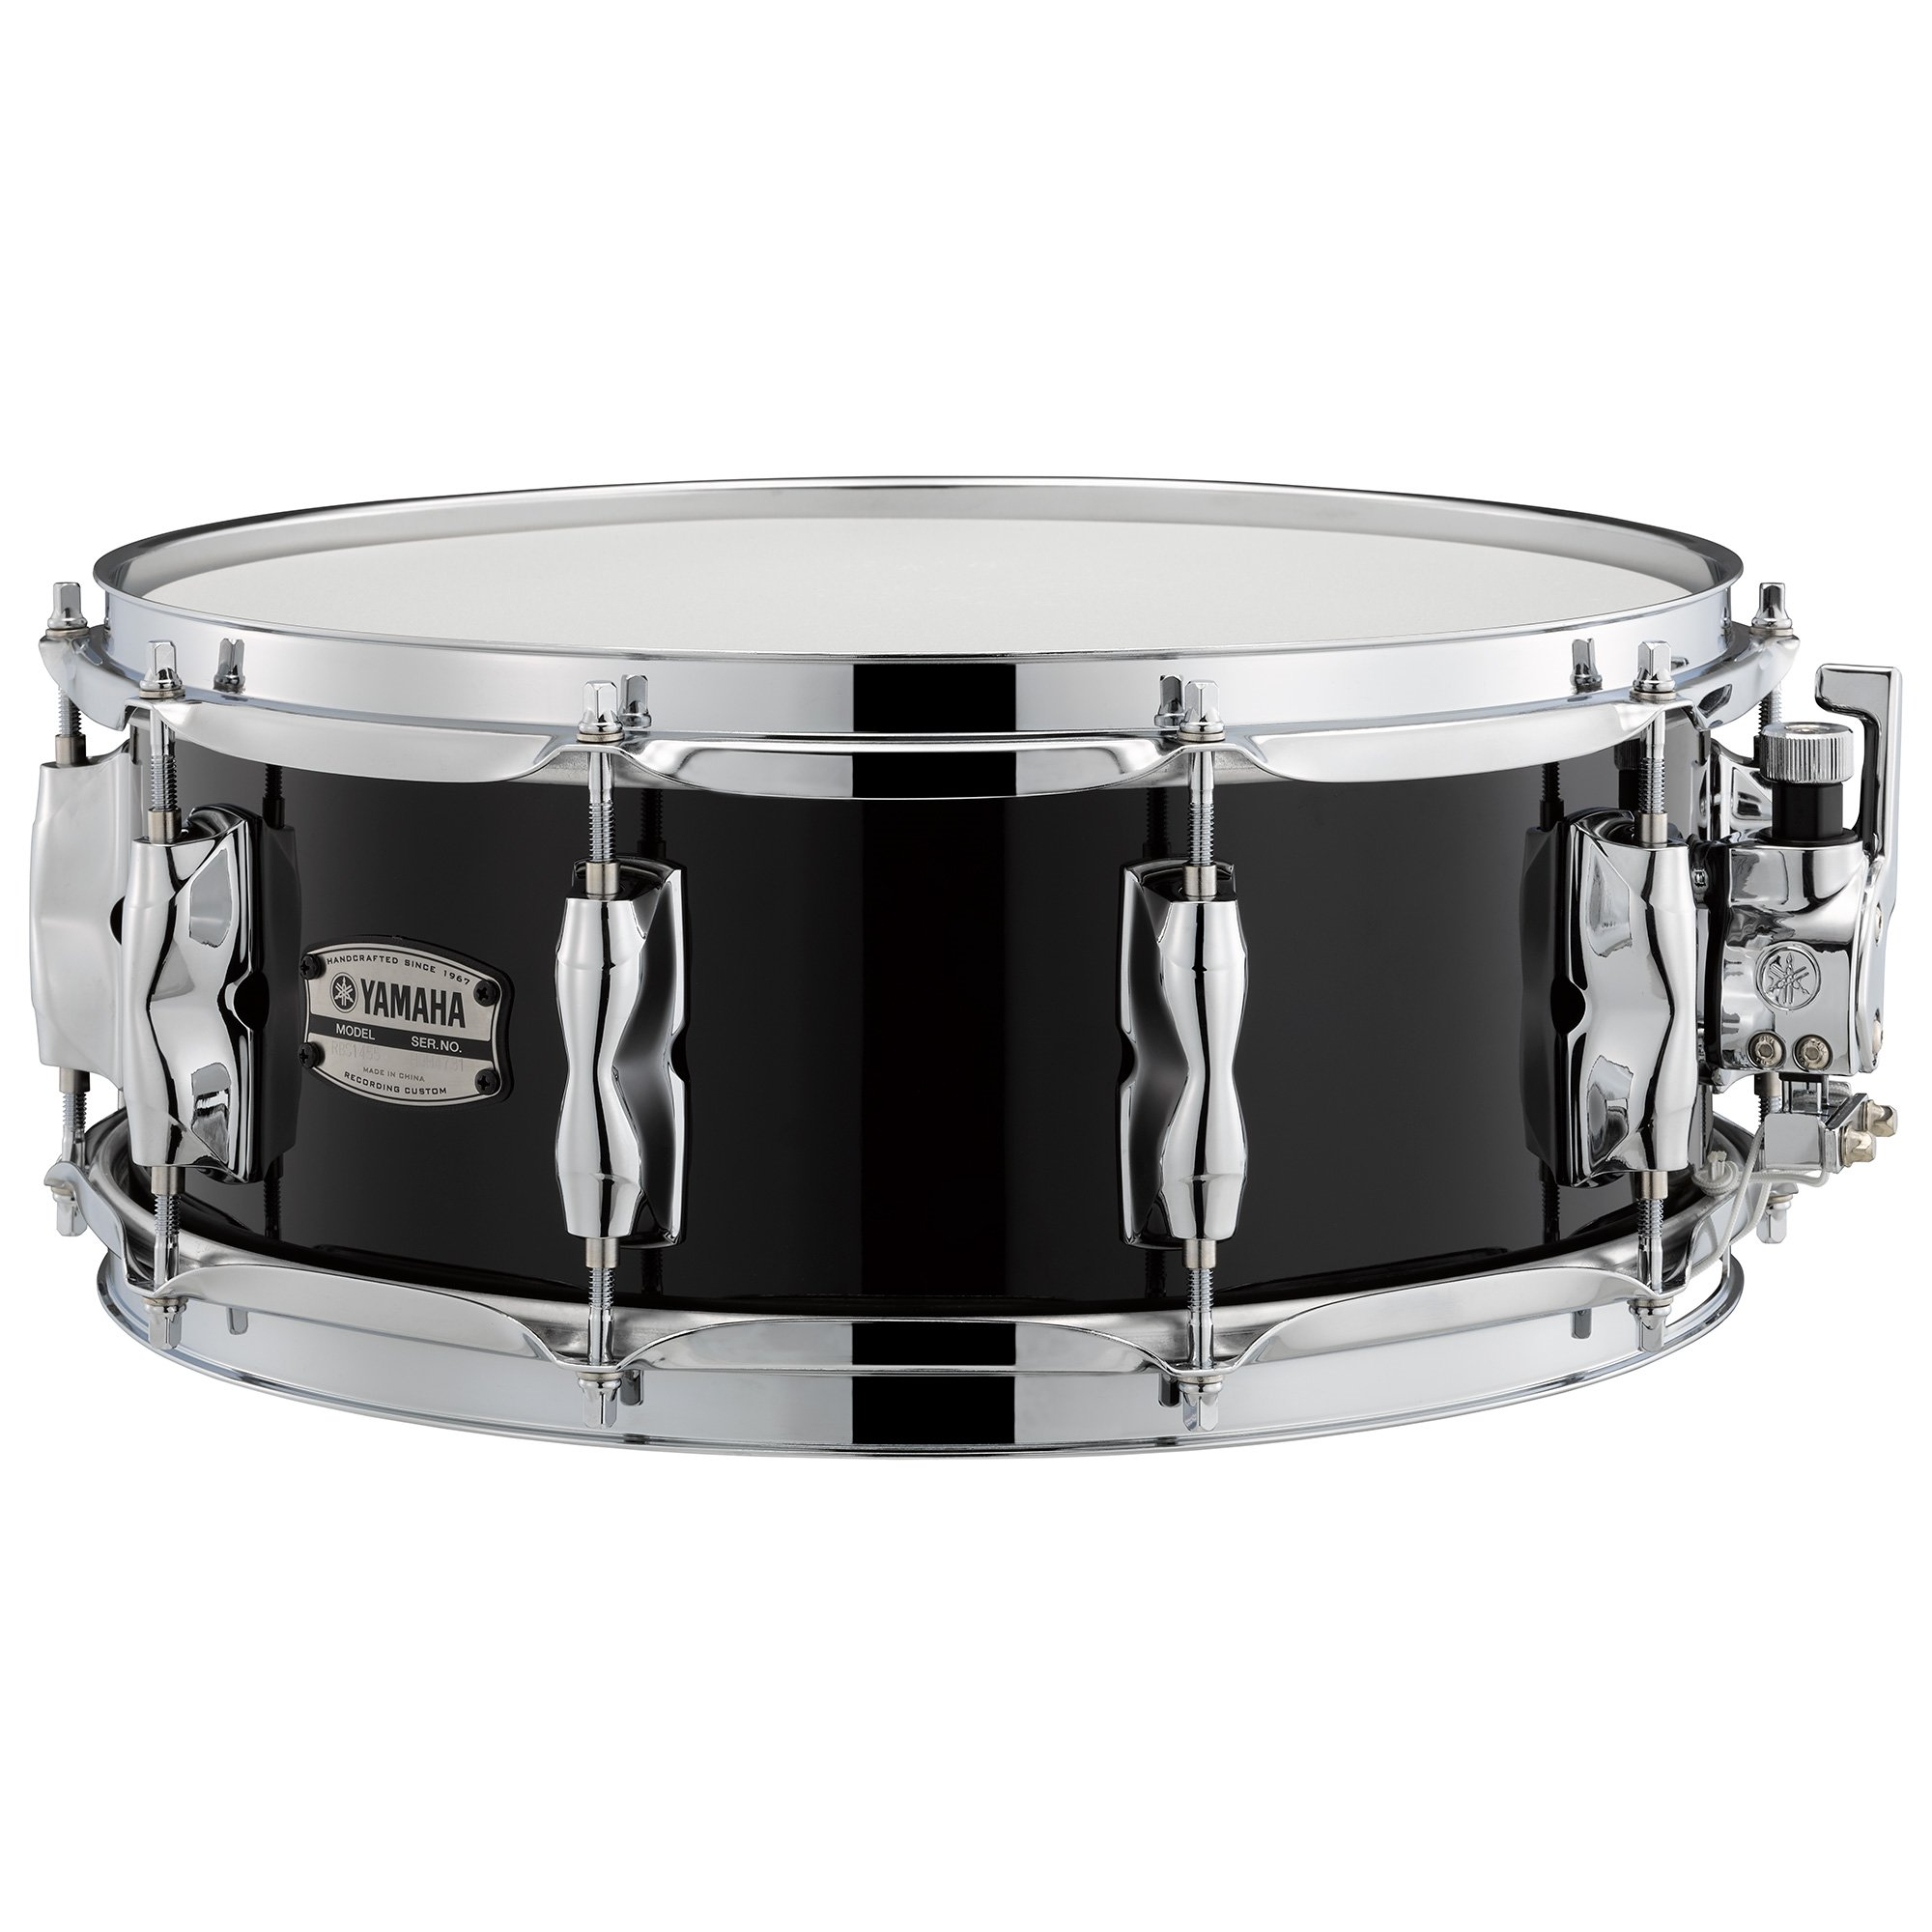 Yamaha RBS1480 Solid Black